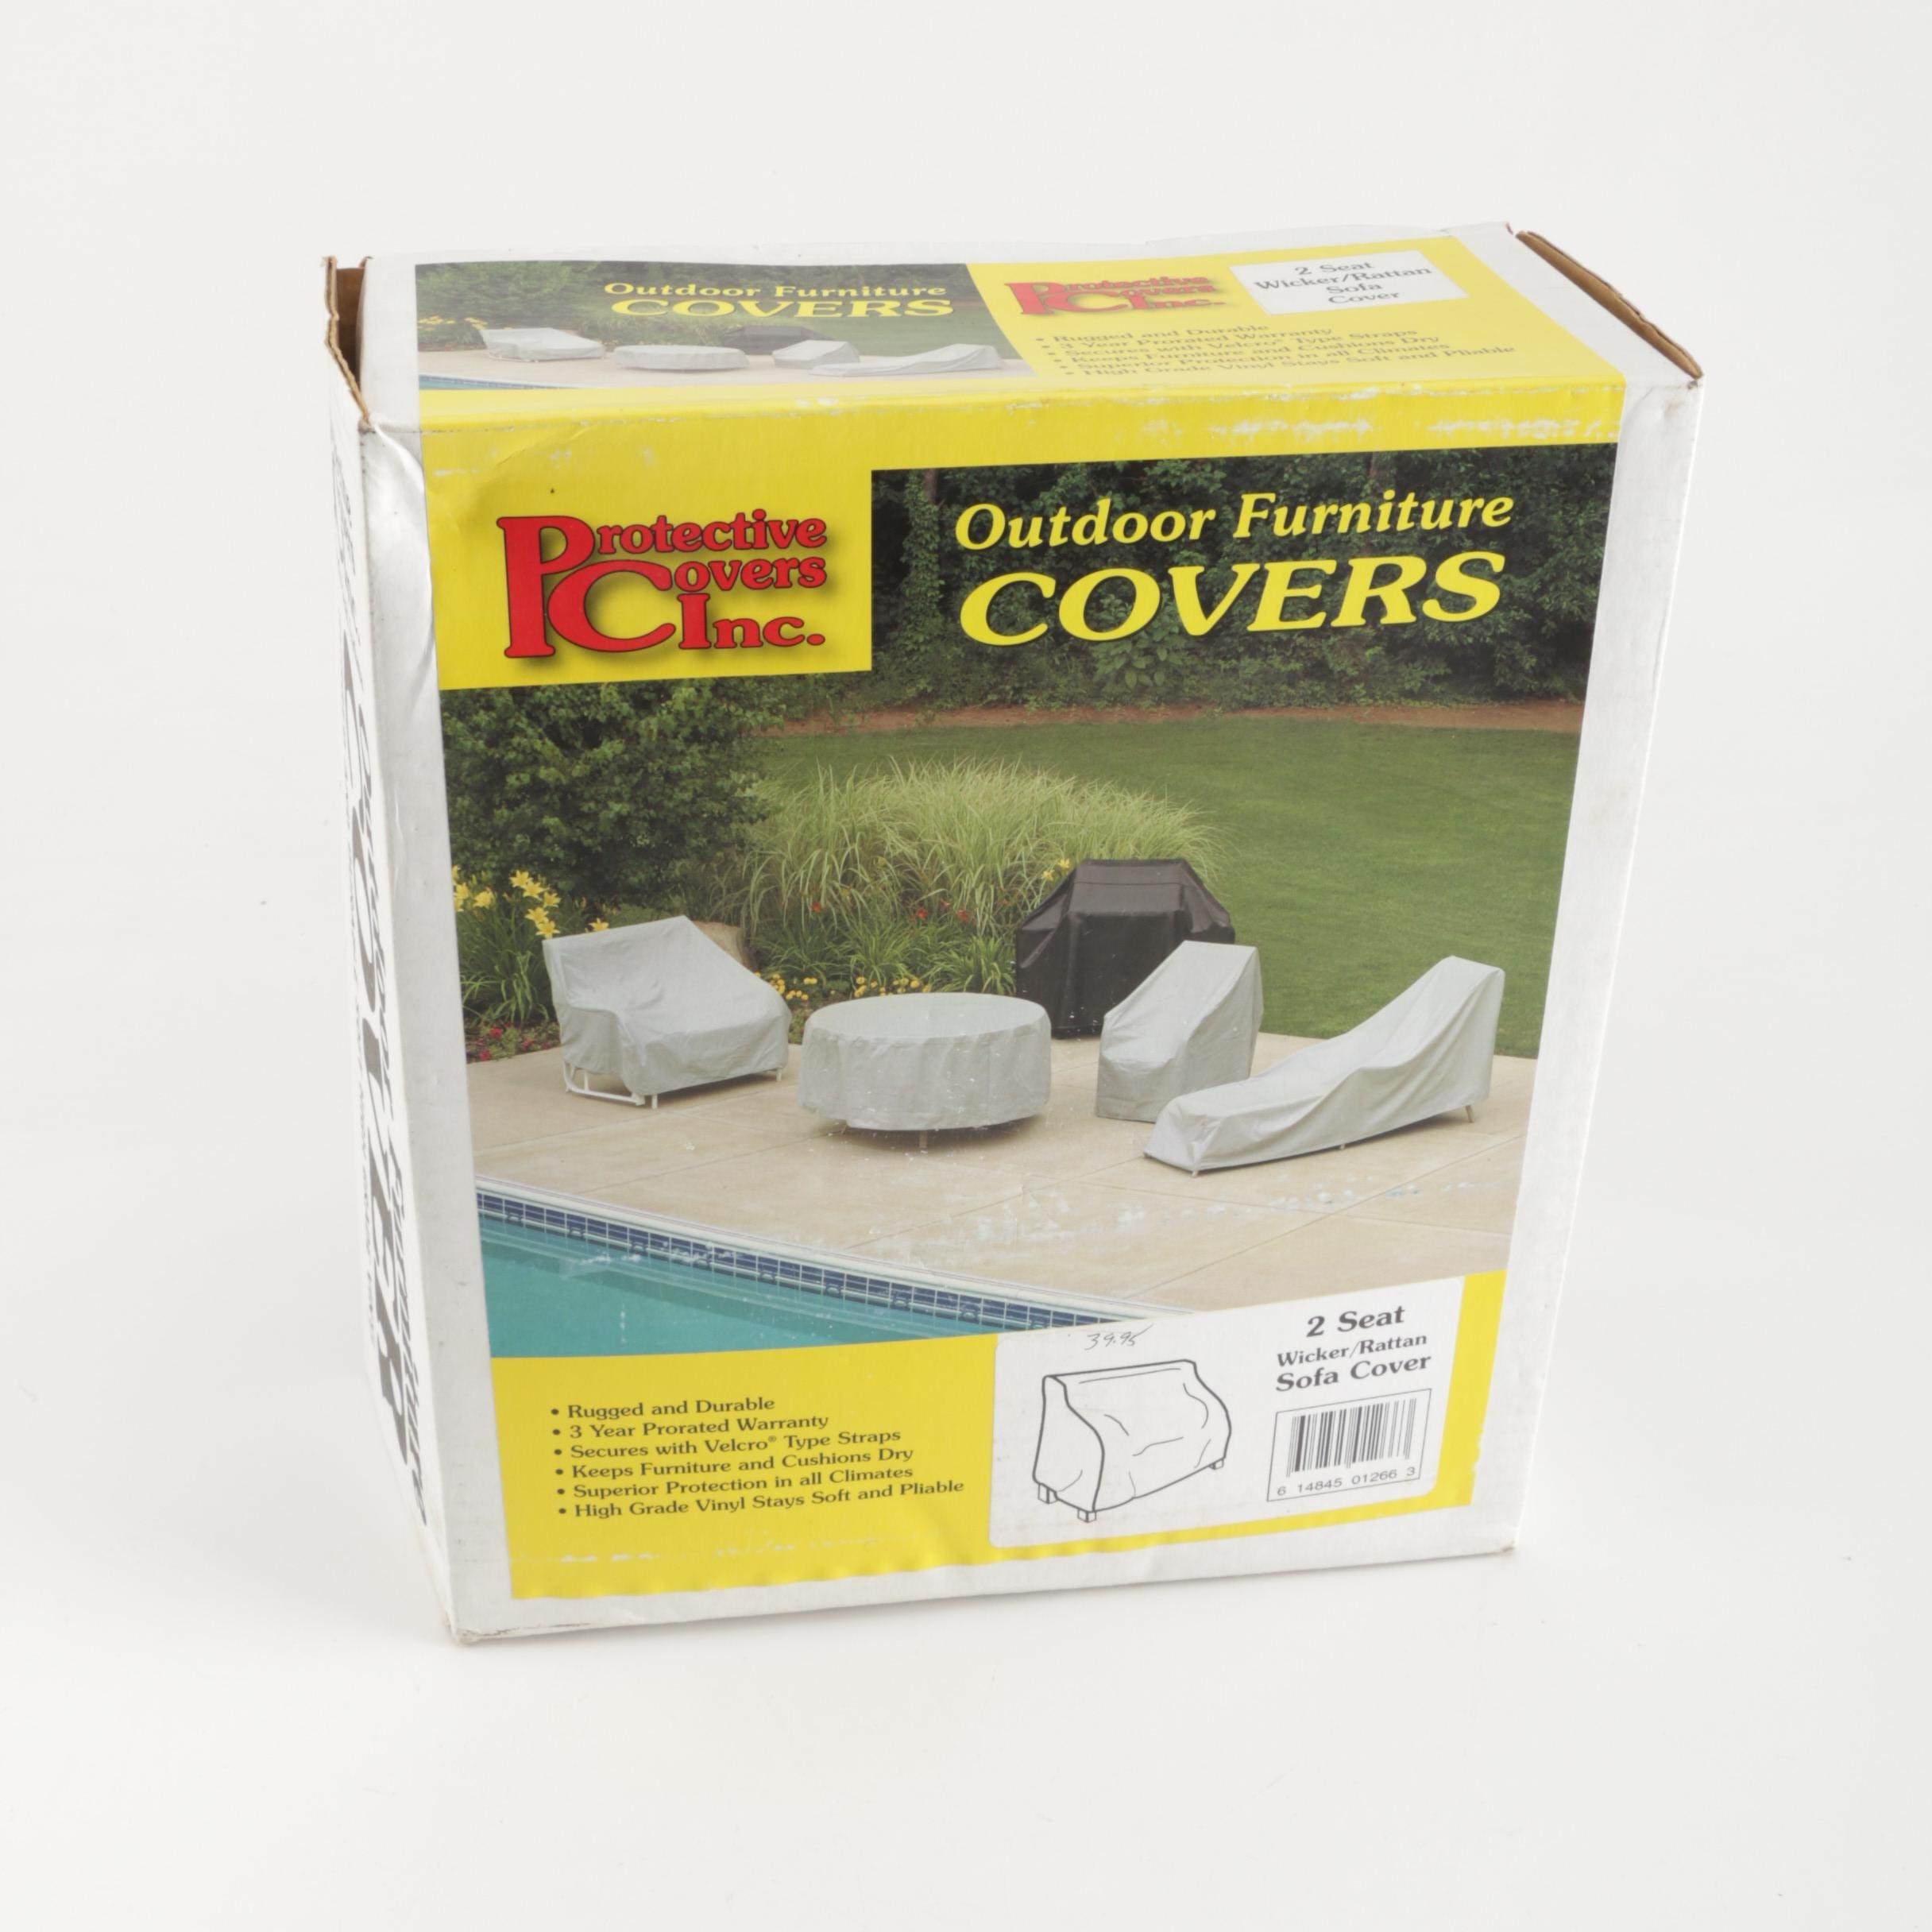 Protective Covers Inc. Outdoor Two-Seat Sofa Furniture Cover